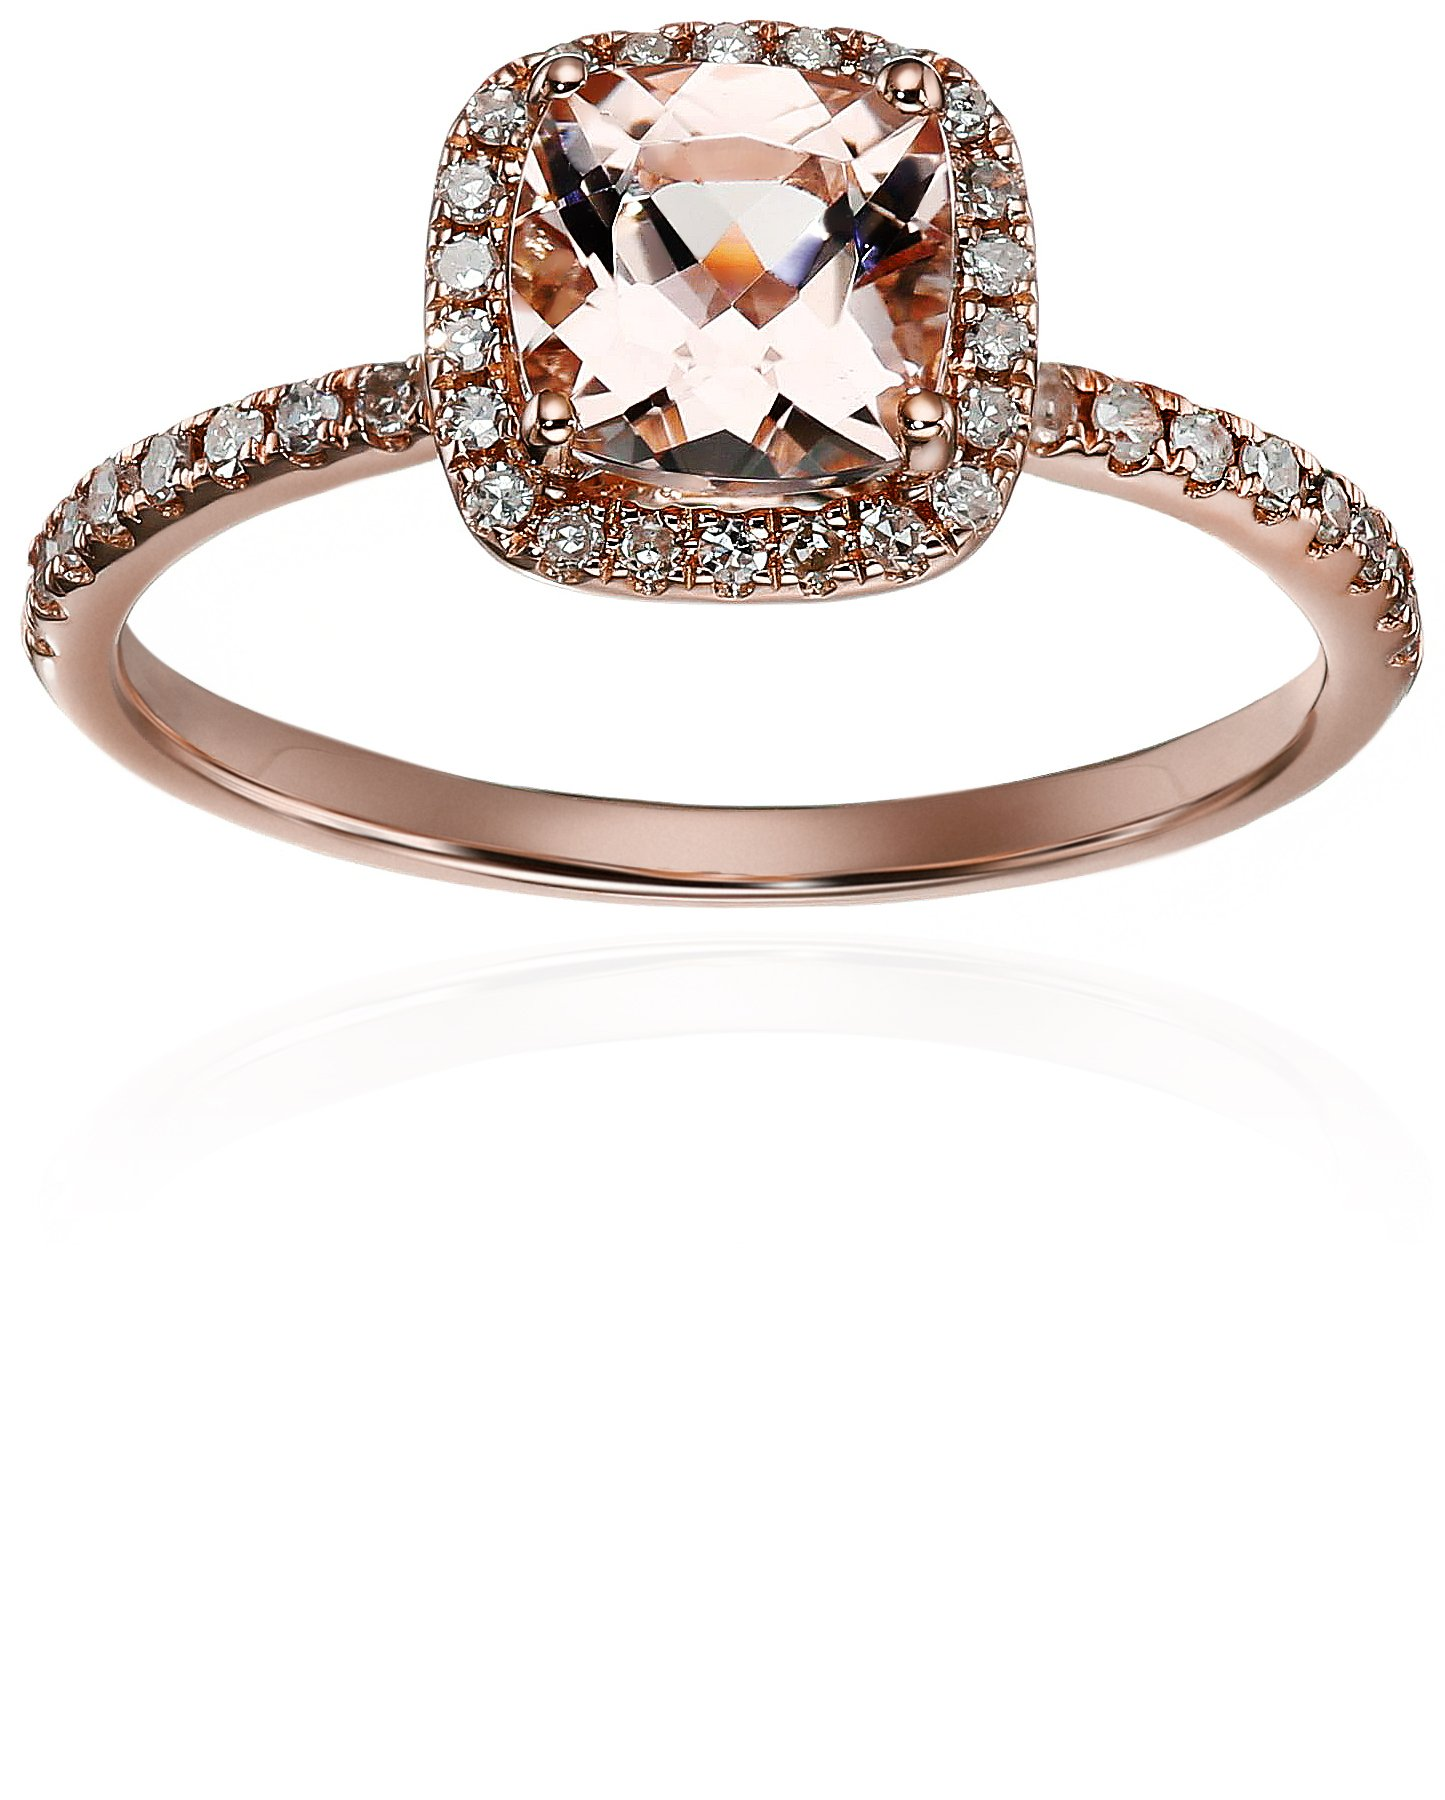 10k Rose Gold 1ct Morganite and Diamond Cushion Engagement Ring (1/4cttw, H-I Color, I1-I2 Clarity), Size 7